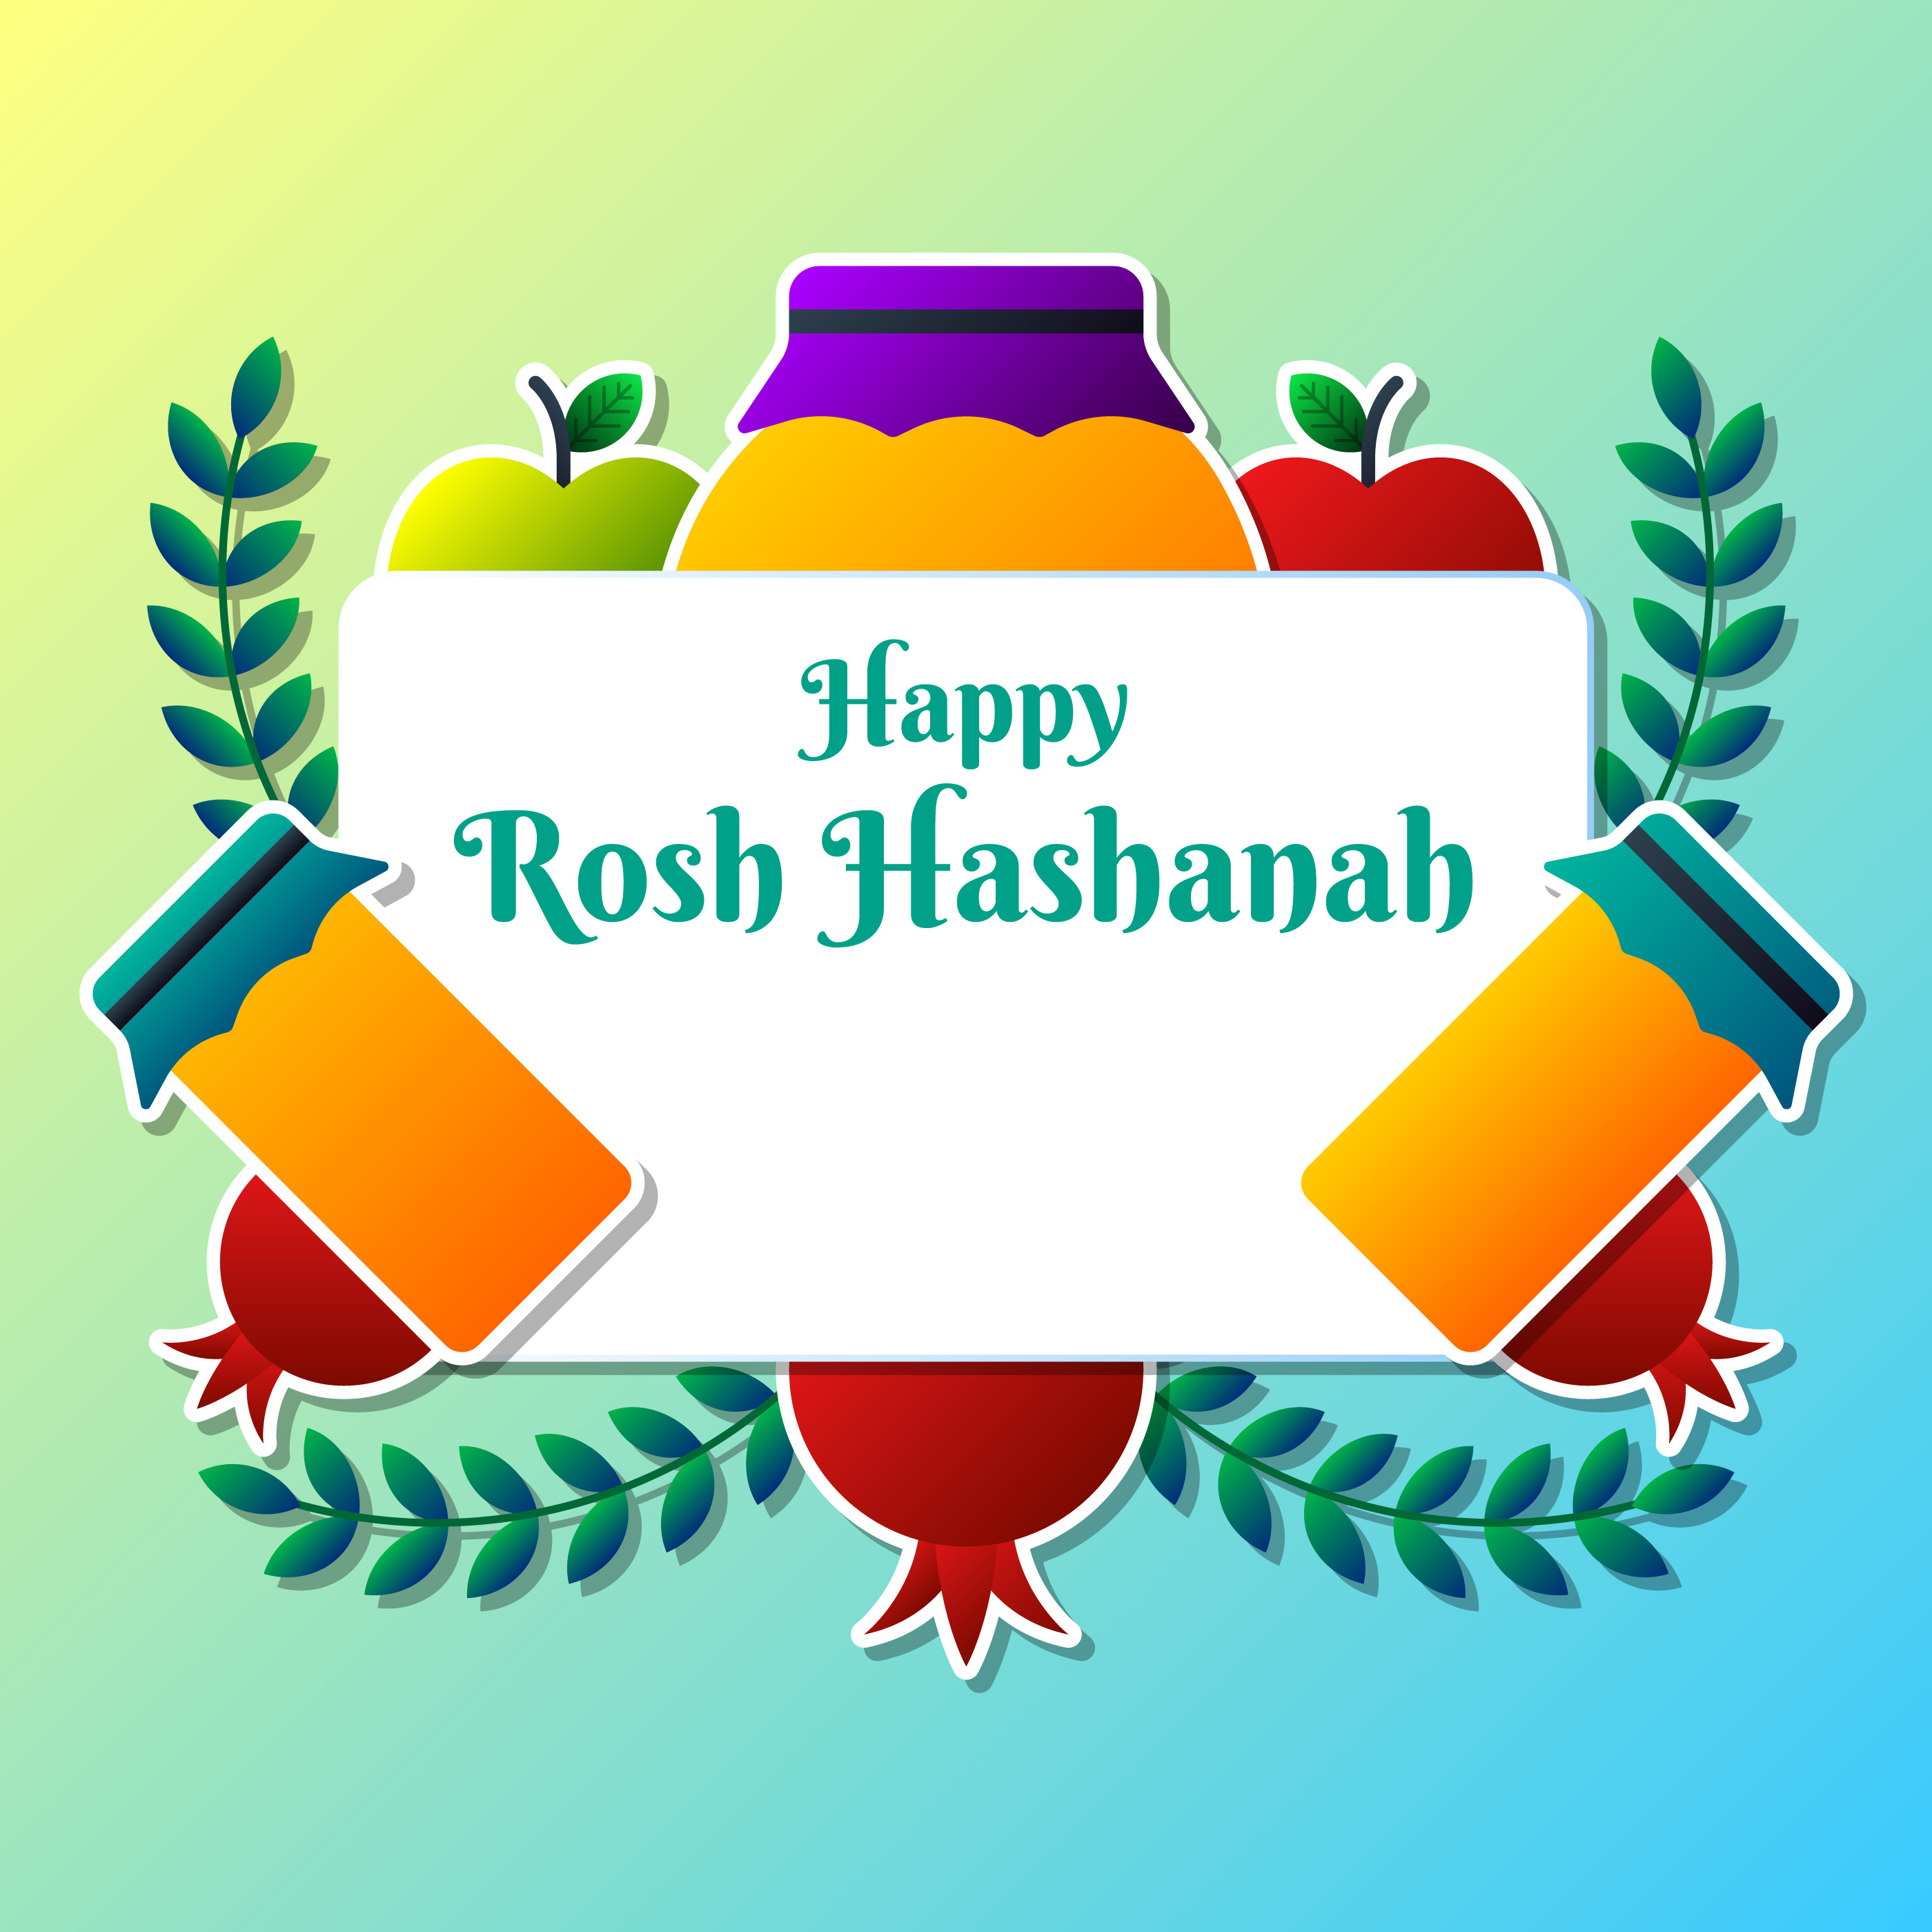 Greeting Card Design For Jewish New Year Rosh Hashanah Template